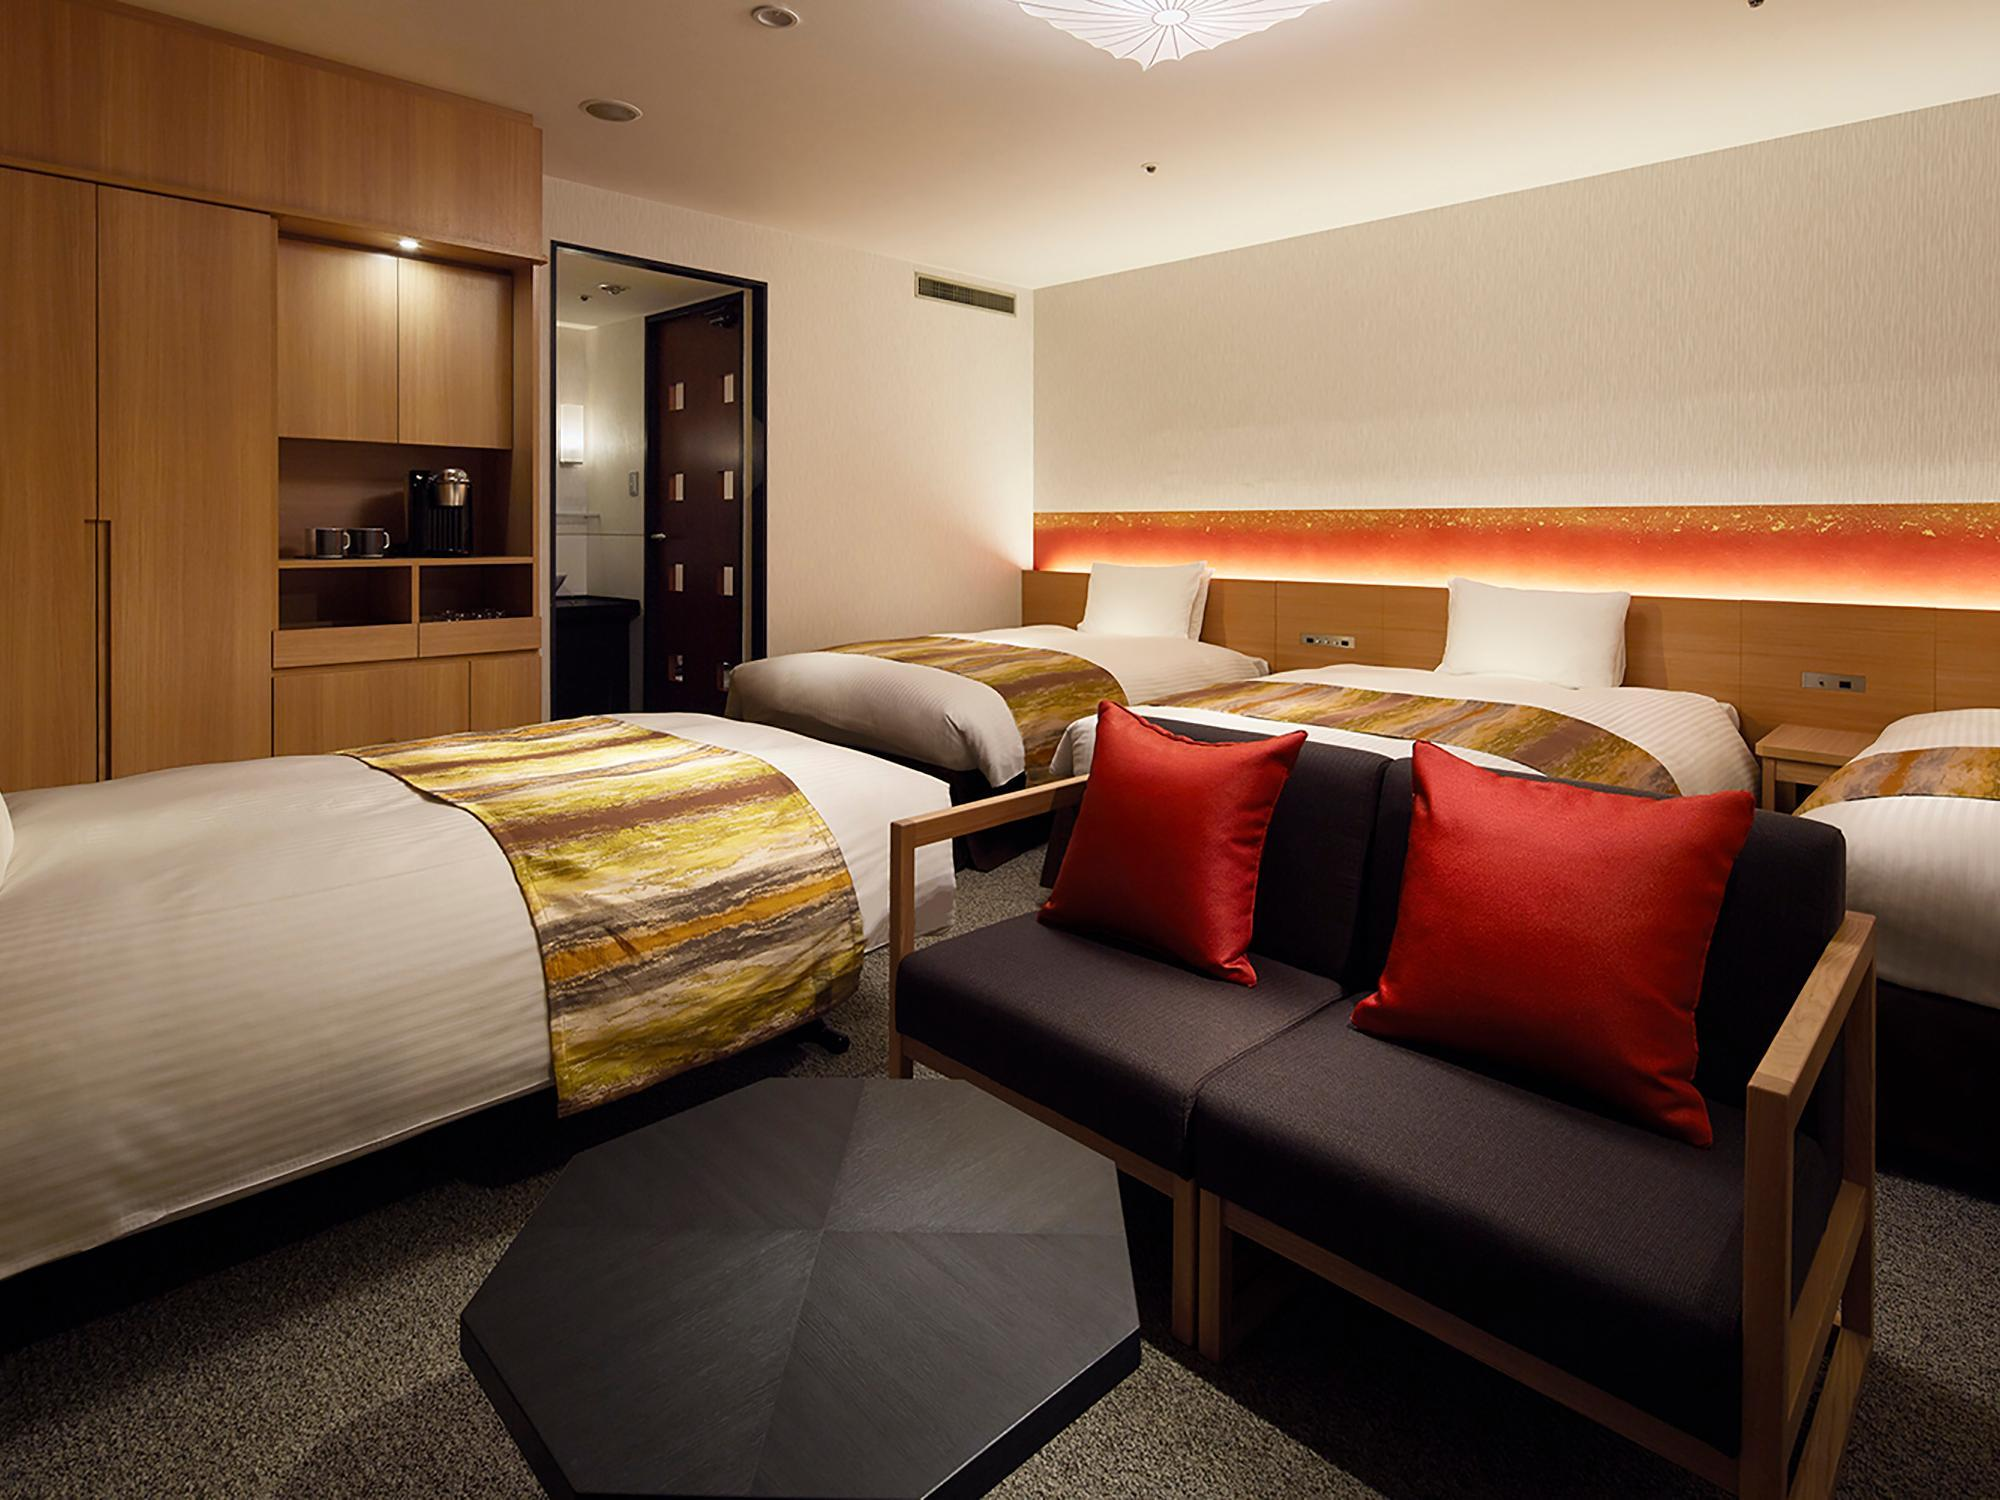 Kamar Triple dengan Kasur Tambahan (Triple Room with Extra Bed)